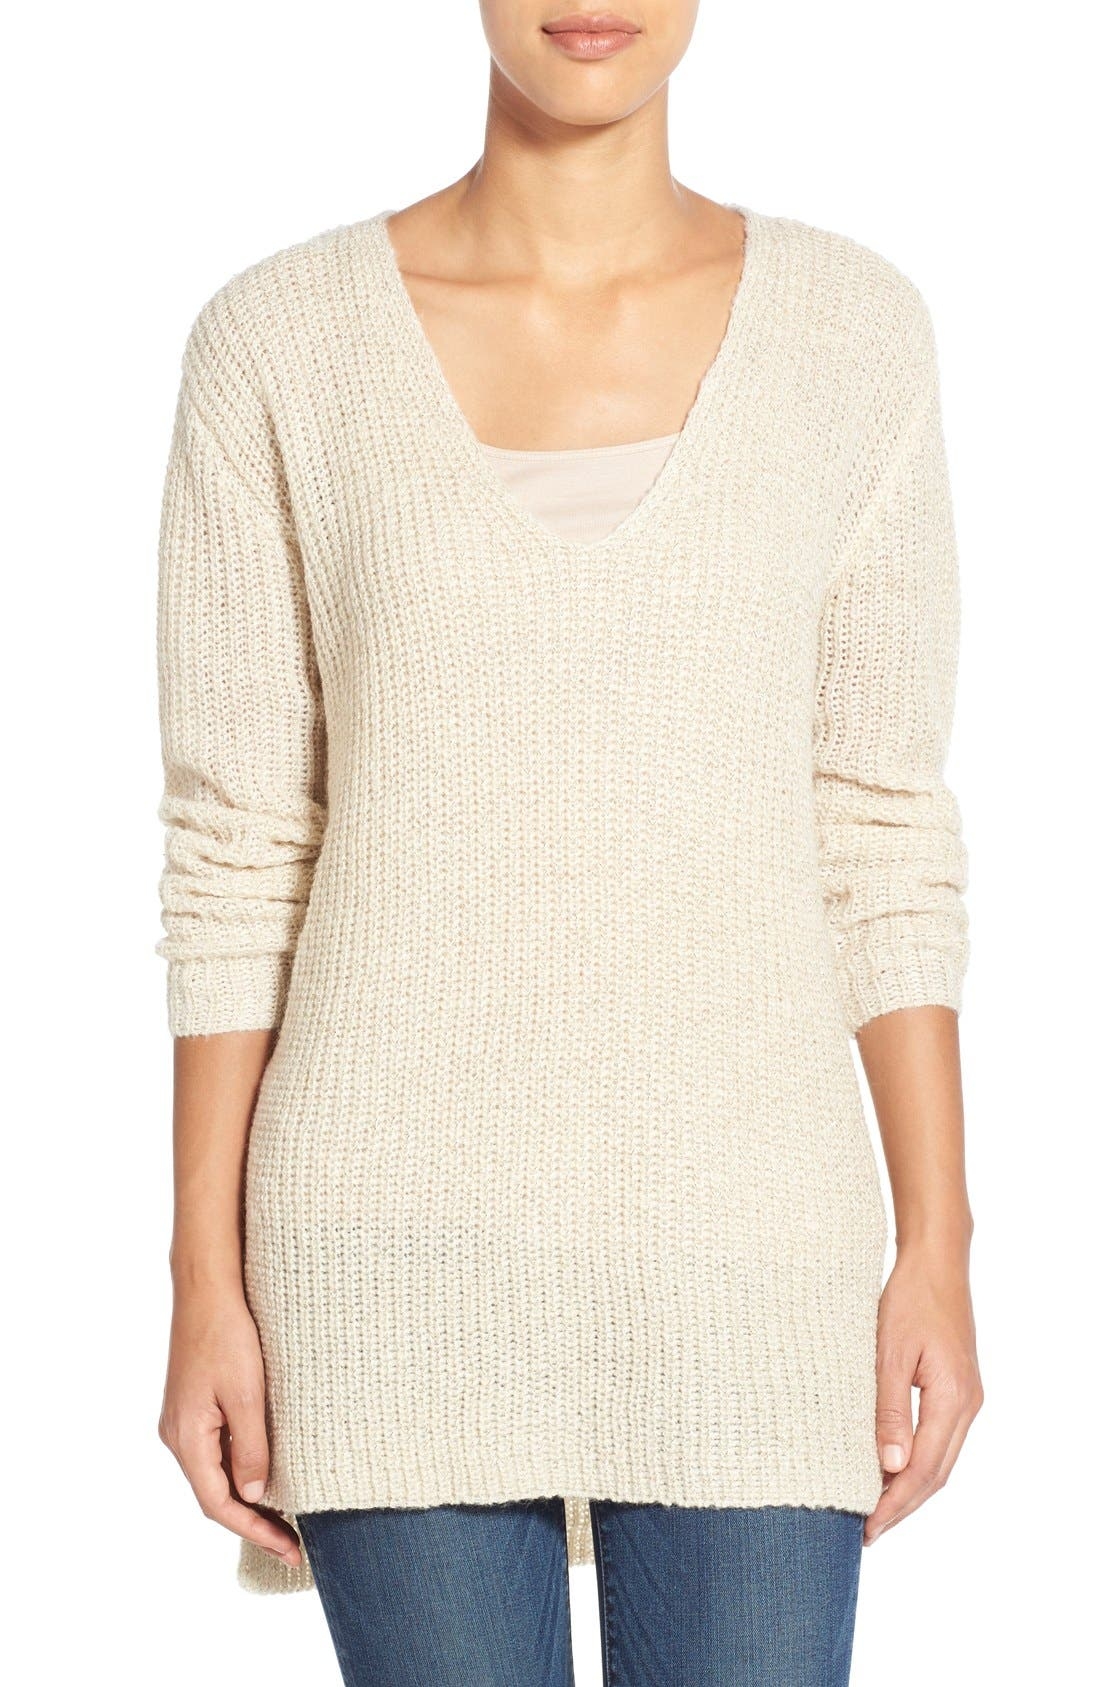 Alternate Image 1 Selected - Two by Vince Camuto Metallic Flecked V-Neck Sweater